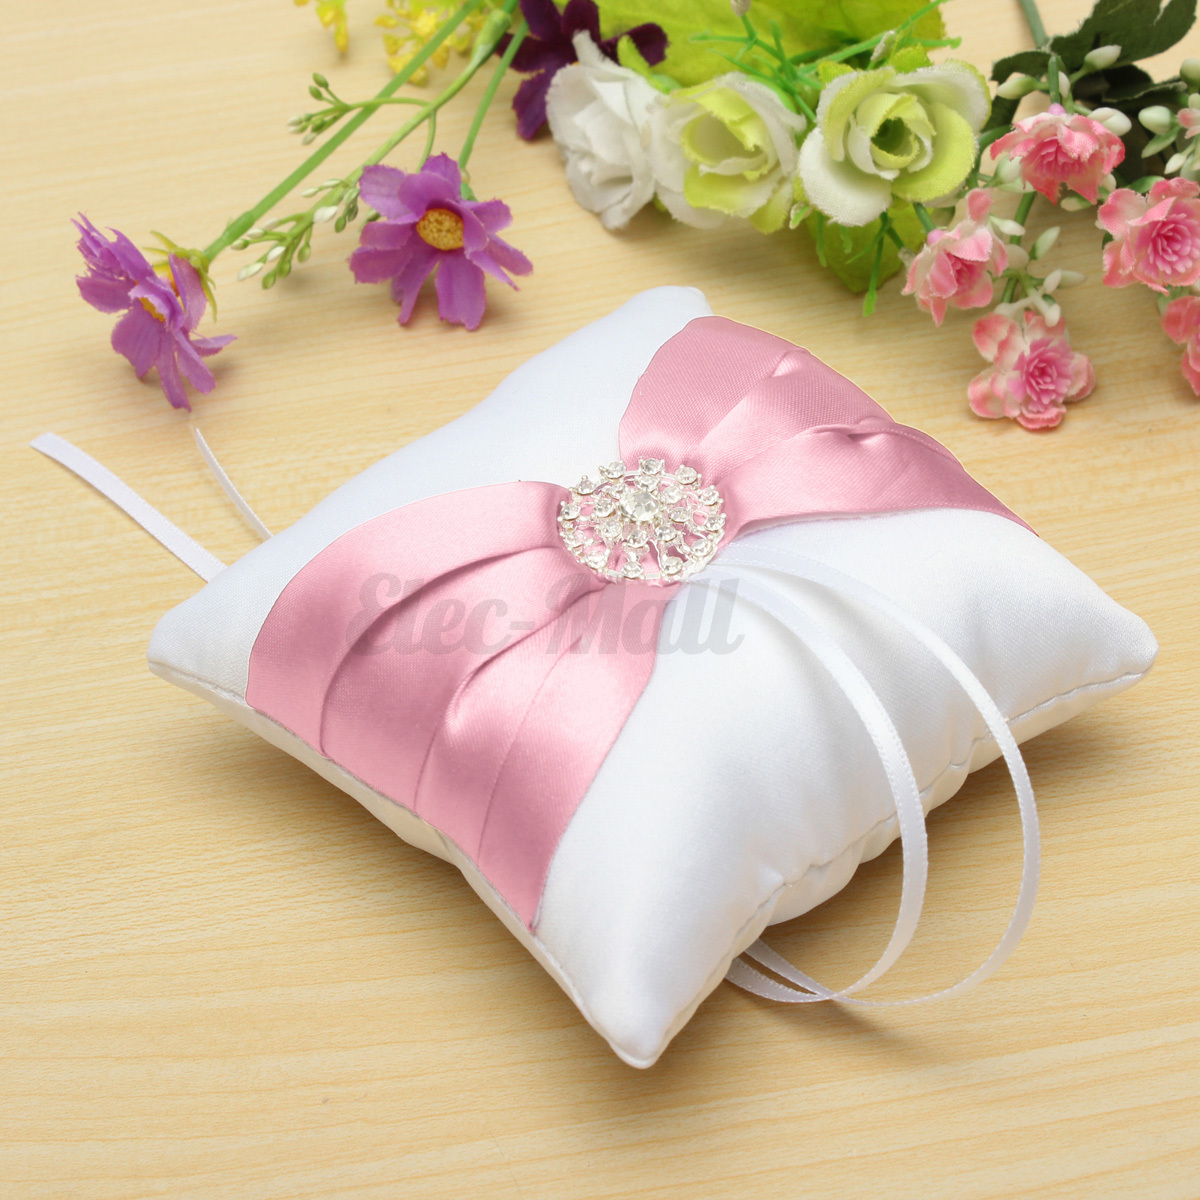 Bowknot Satin Diamond Pocket Ring Pillow Bearer Cushion Romantic ...